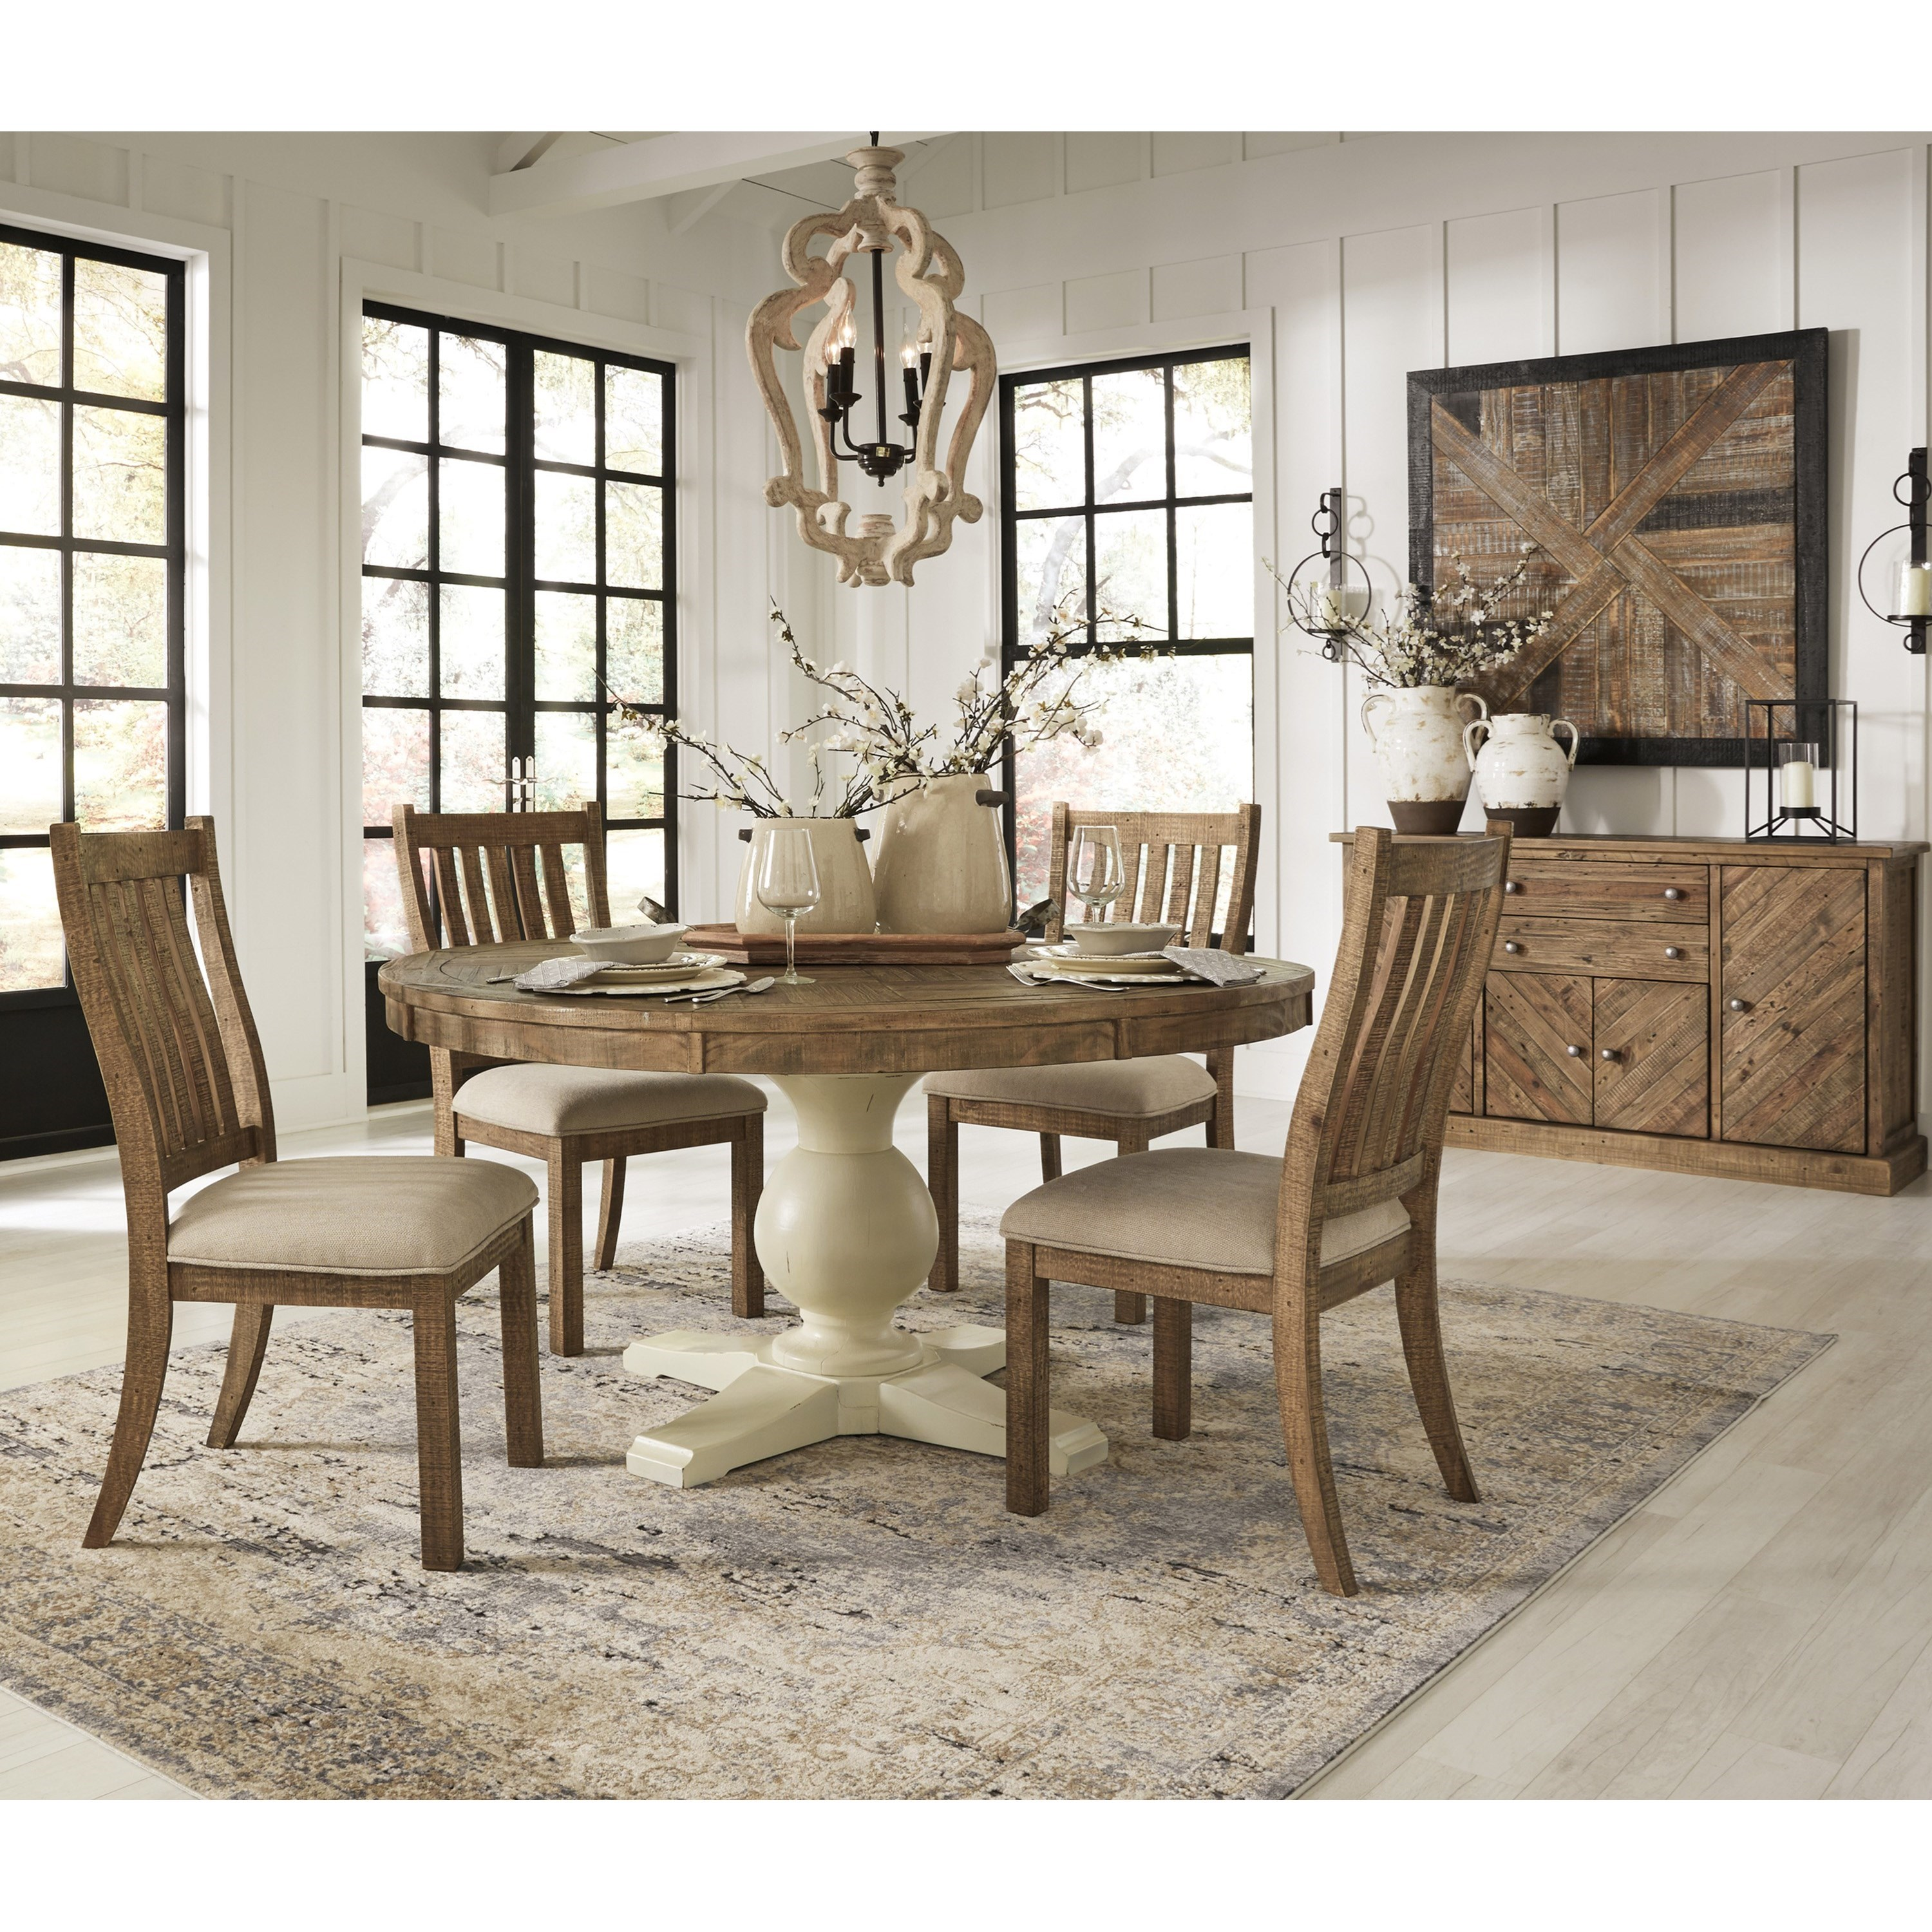 Grindleburg Casual Dining Room Group by Ashley (Signature Design) at Johnny Janosik